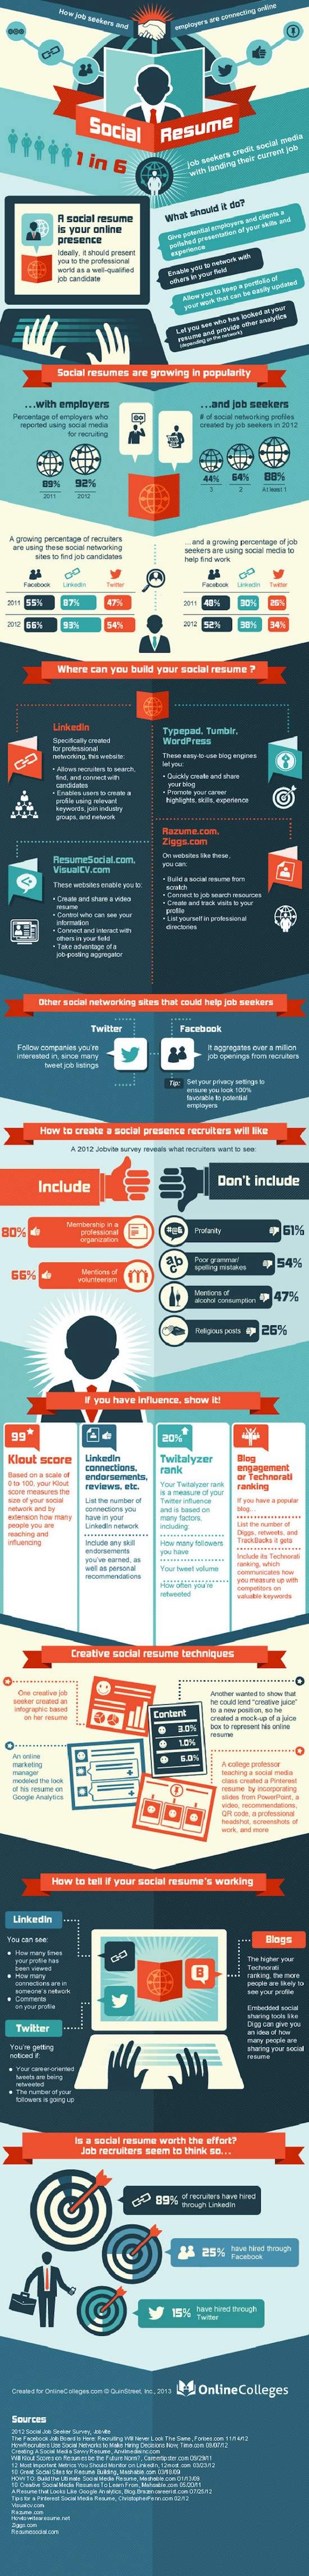 create-a-social-resume-infographic2